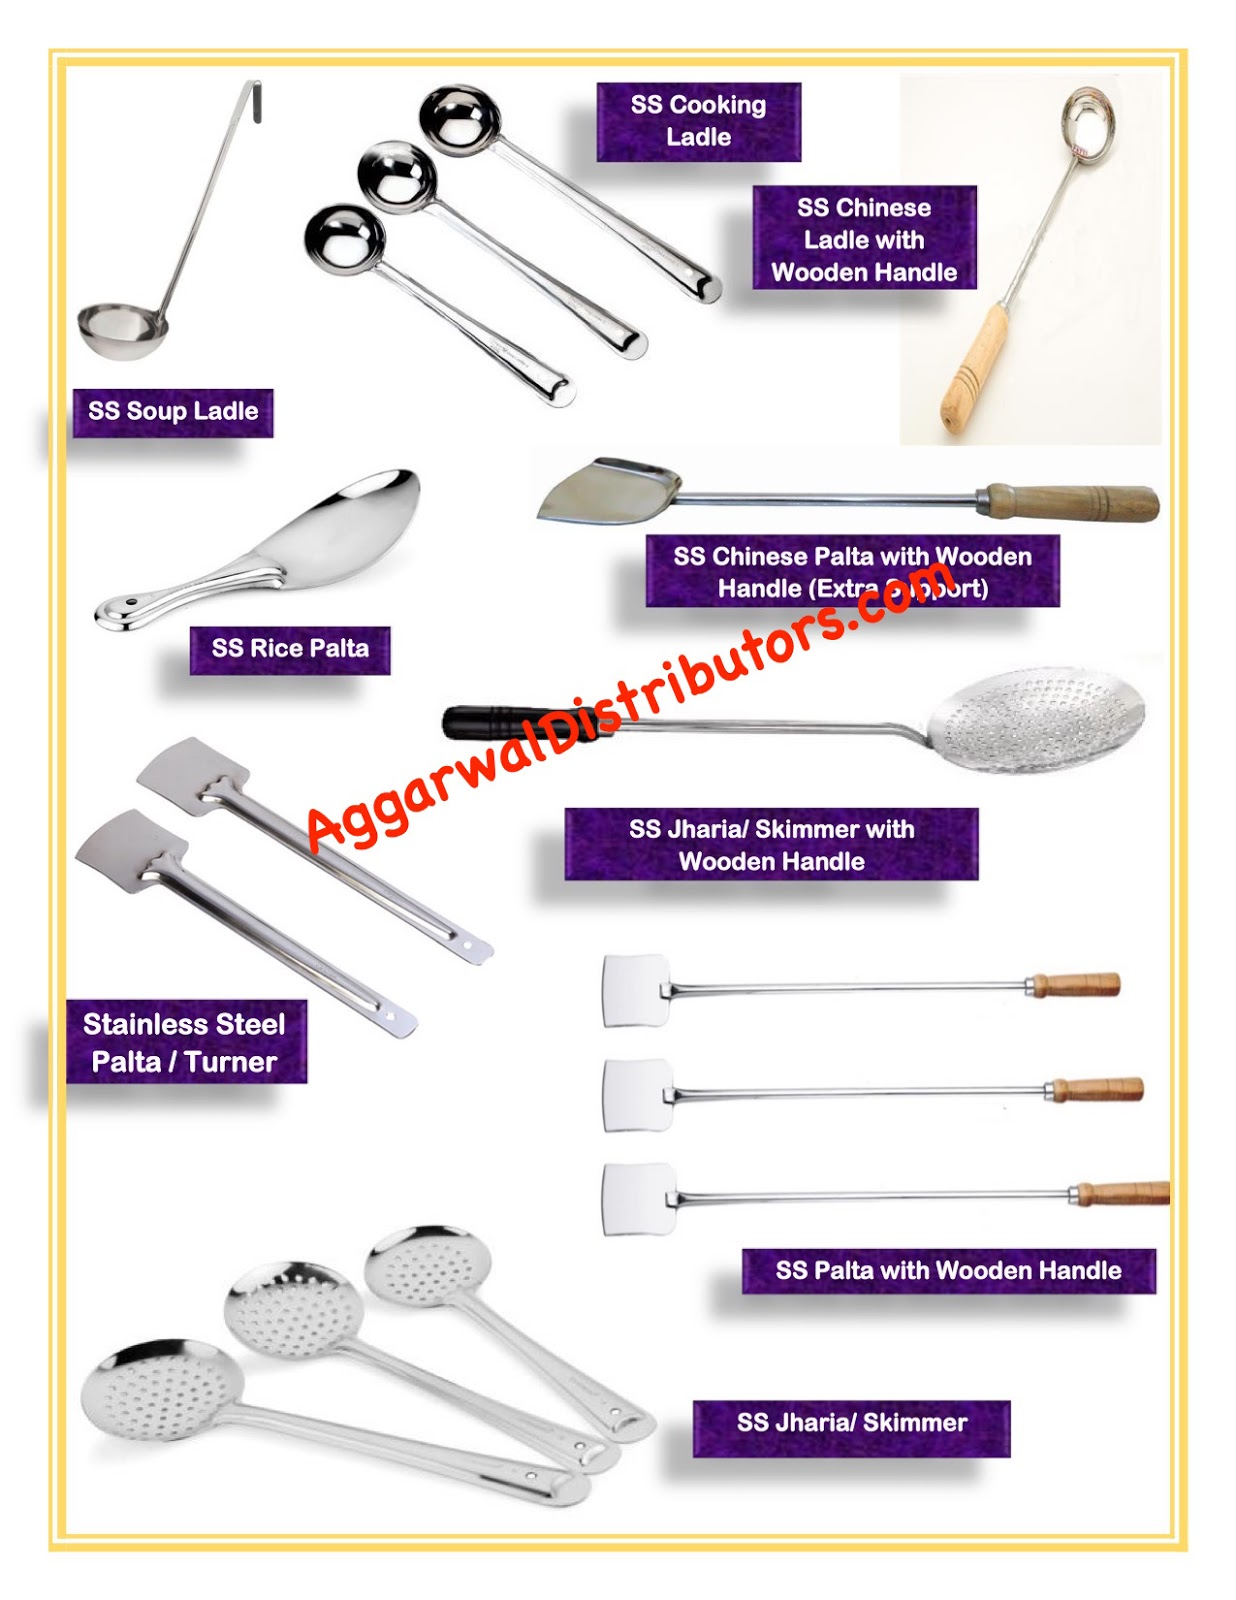 Aggarwal Distributors Kitchen Utensils & Machines. Kitchen Garden Tray. Vintage Kitchen Illustrations. Kitchen Makeovers Pictures. Makeover Of Small Kitchen. Small Kitchen Island With Seating. Kitchen Cabinet Glaze Colors. Kitchen Bathroom London. Kitchen Countertops Options Pictures